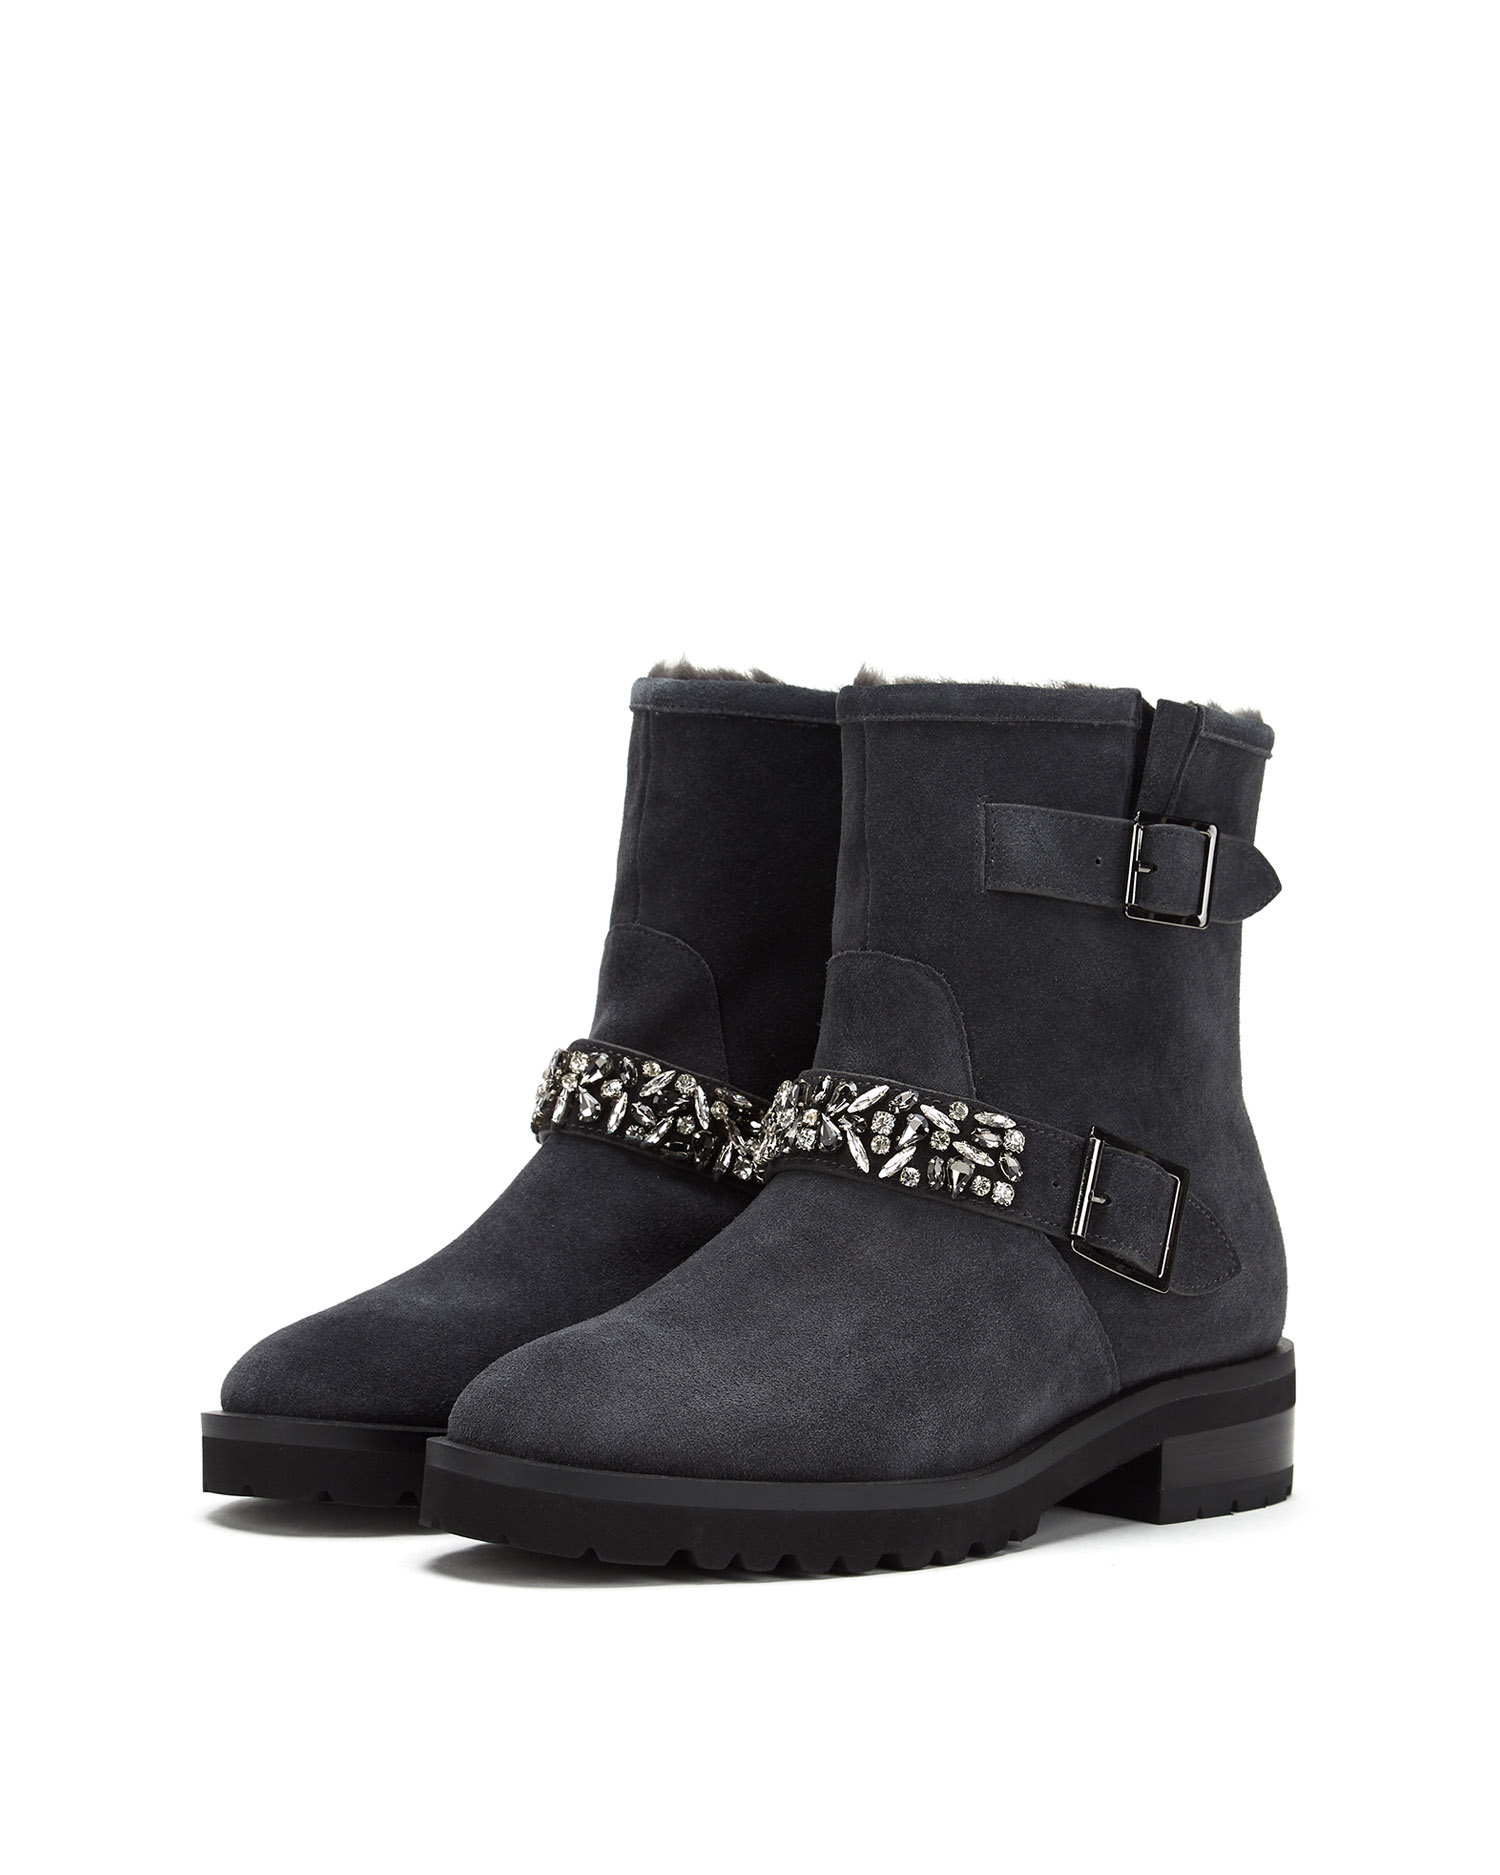 Embellished Furry Boots